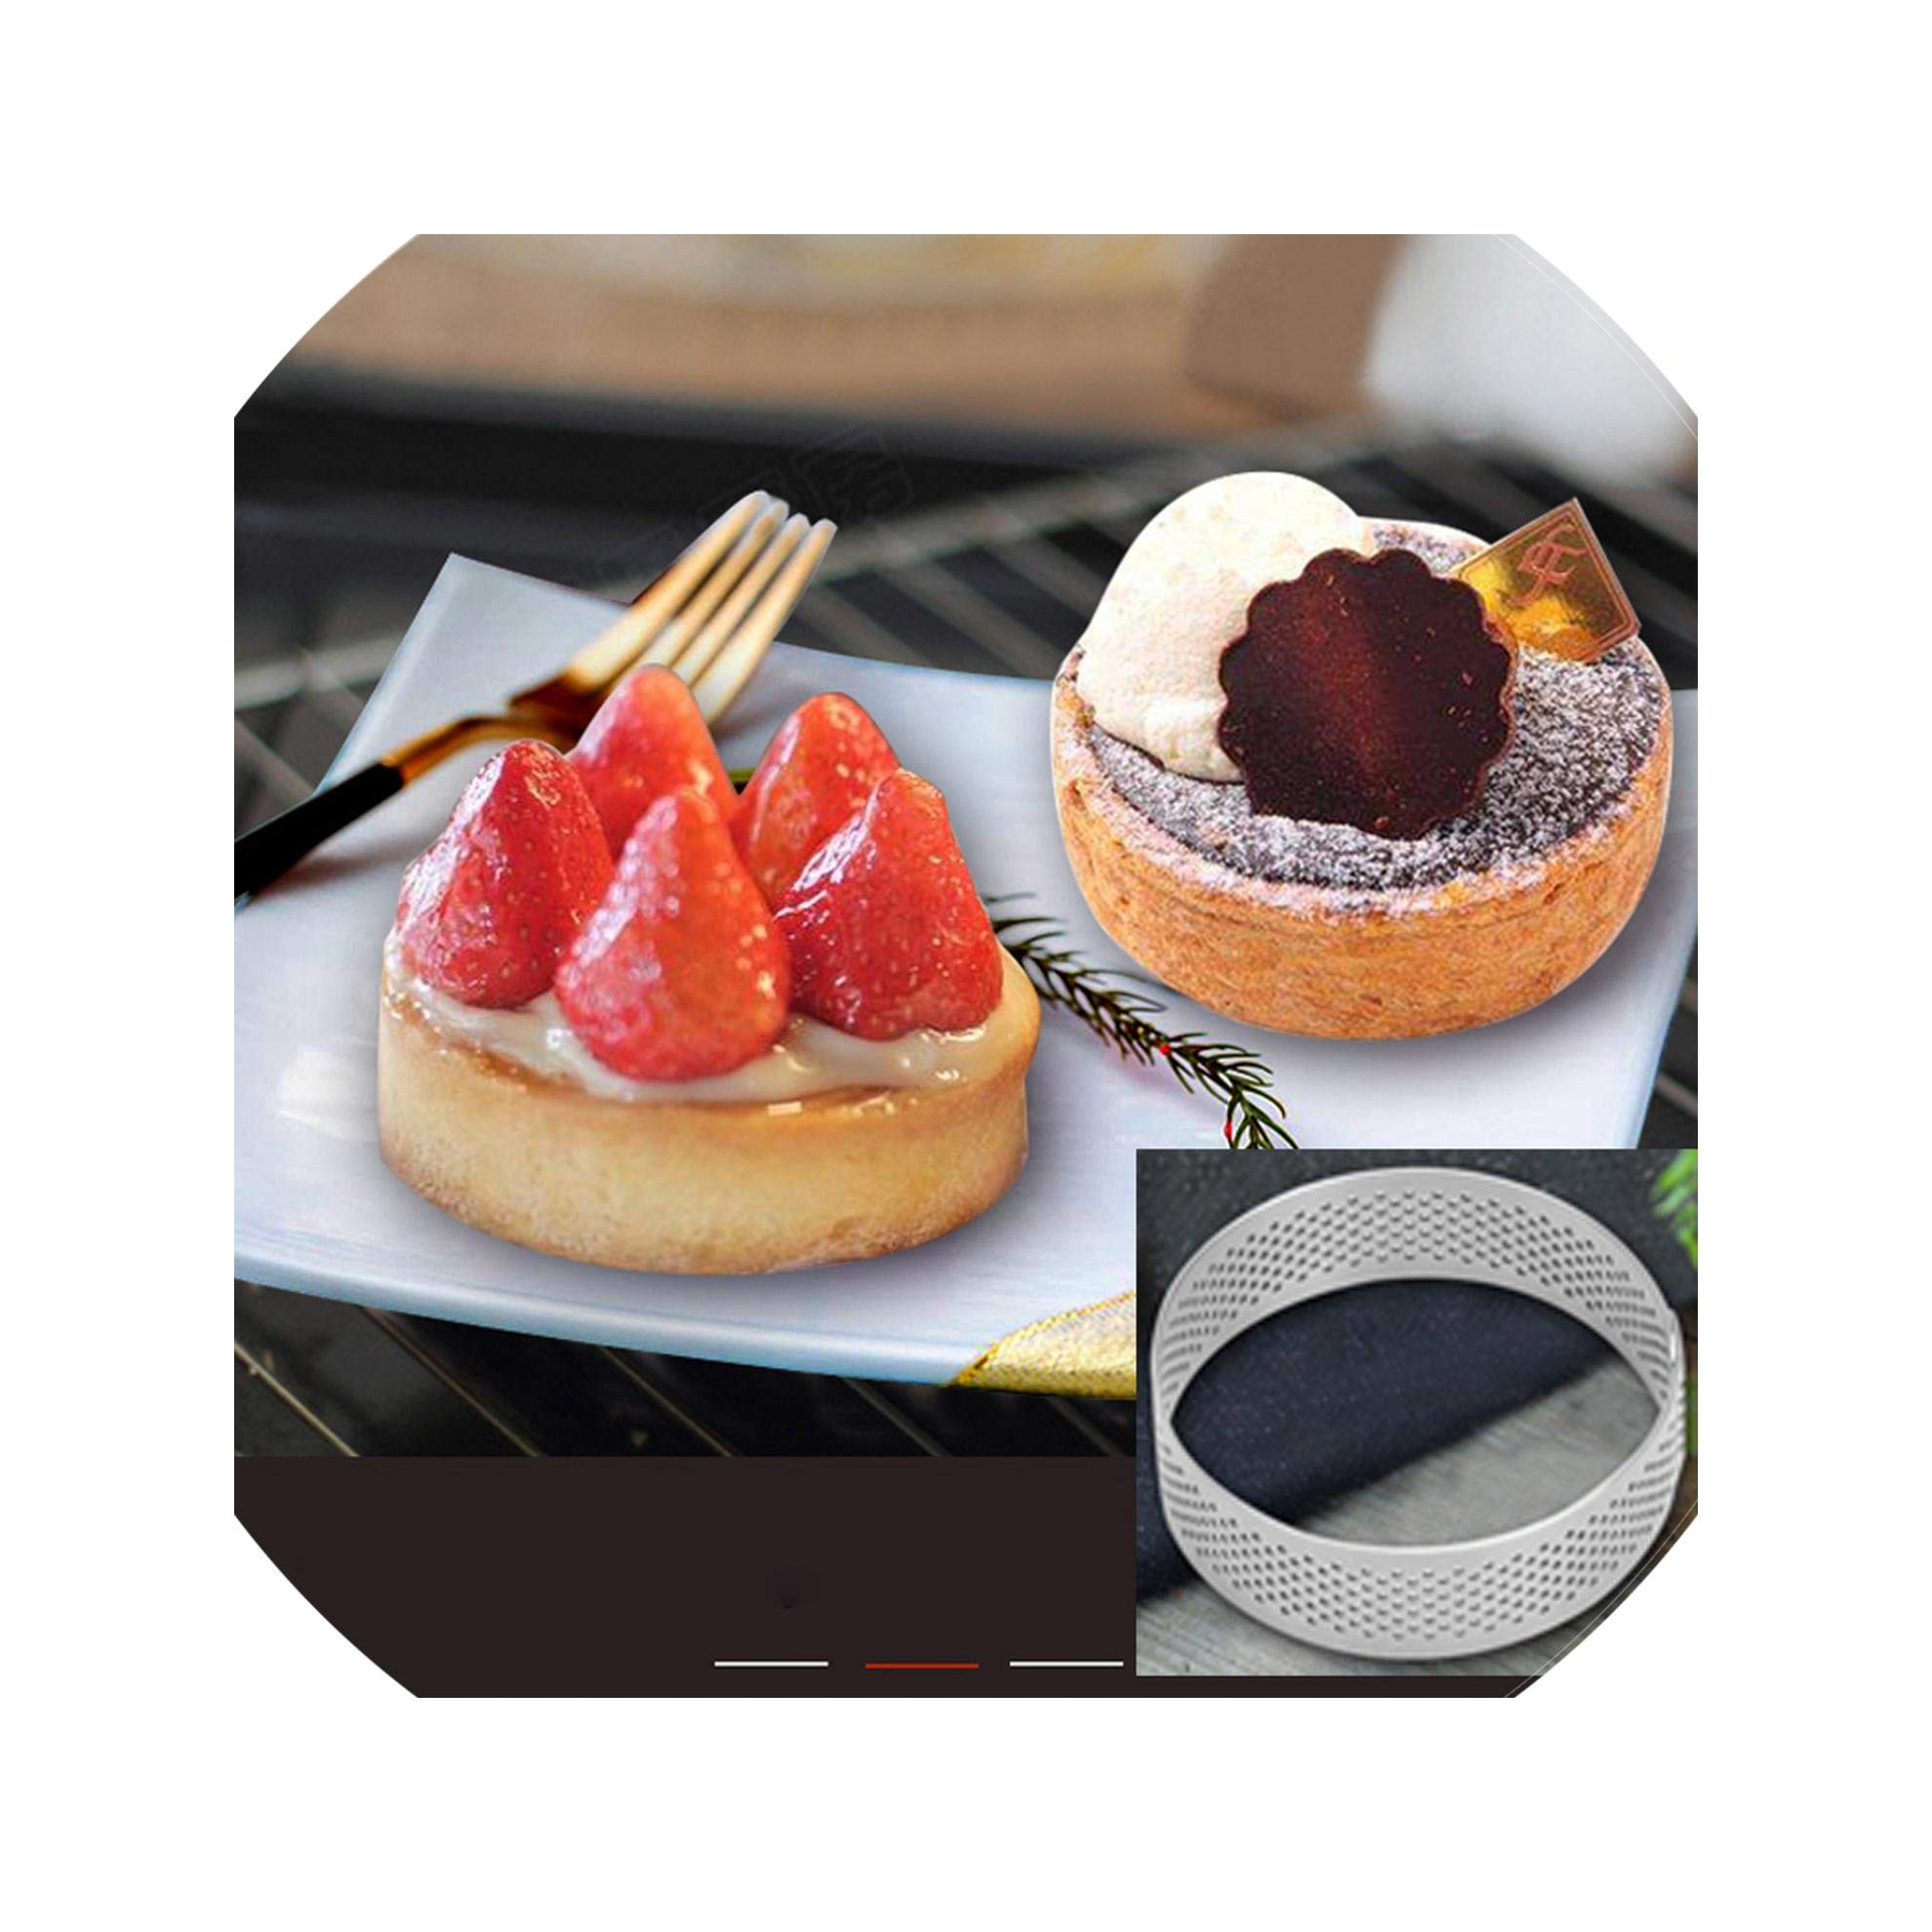 Non-Stick Stainless Steel Material Home Bake Large Size Circle Cake Mould Baking Tool,10Cm